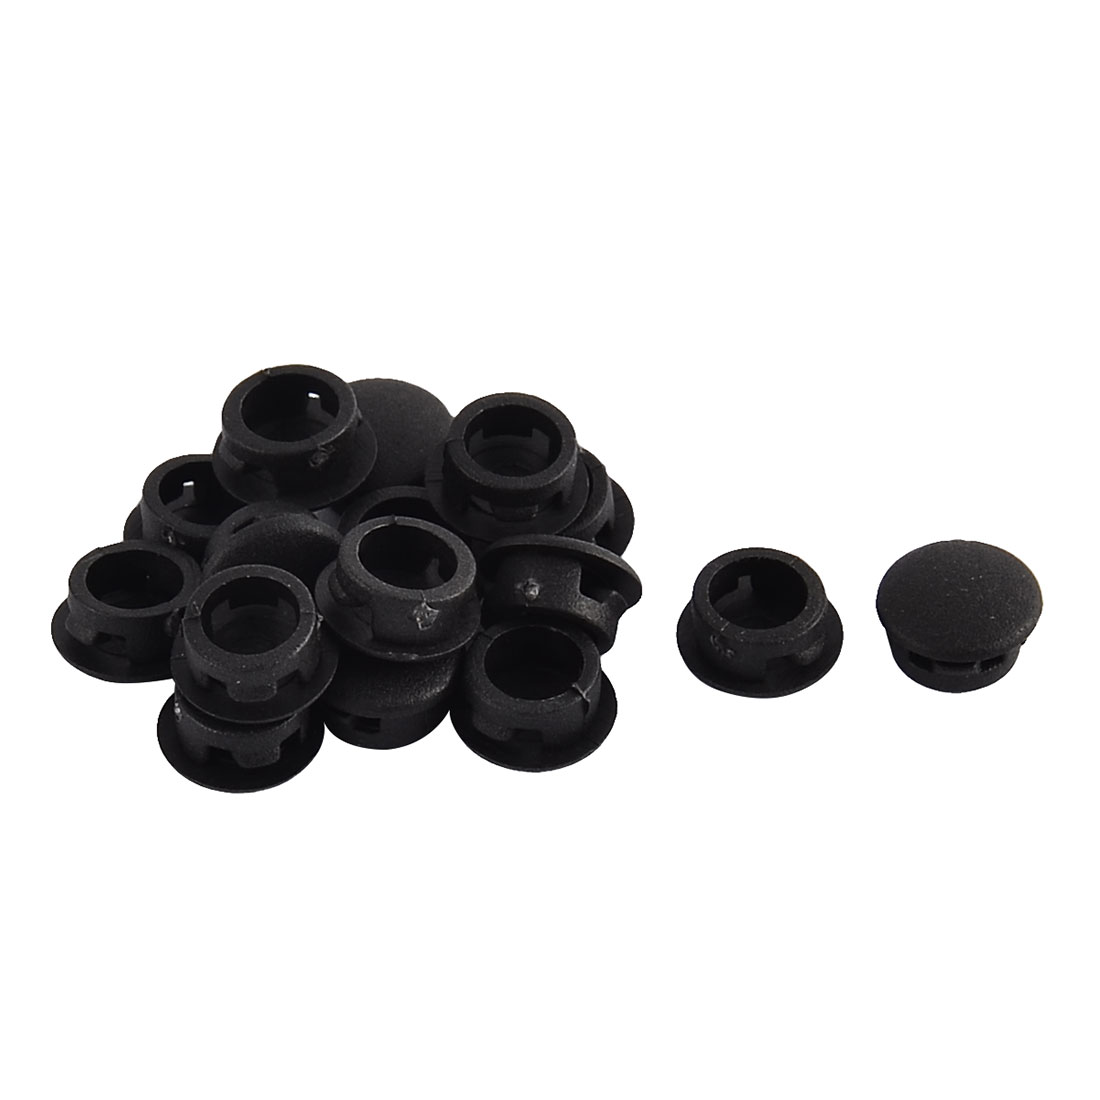 Home Plastic Round Flush Mount Cable Connector Hole Stoppers Covers Black 8mm 16pcs